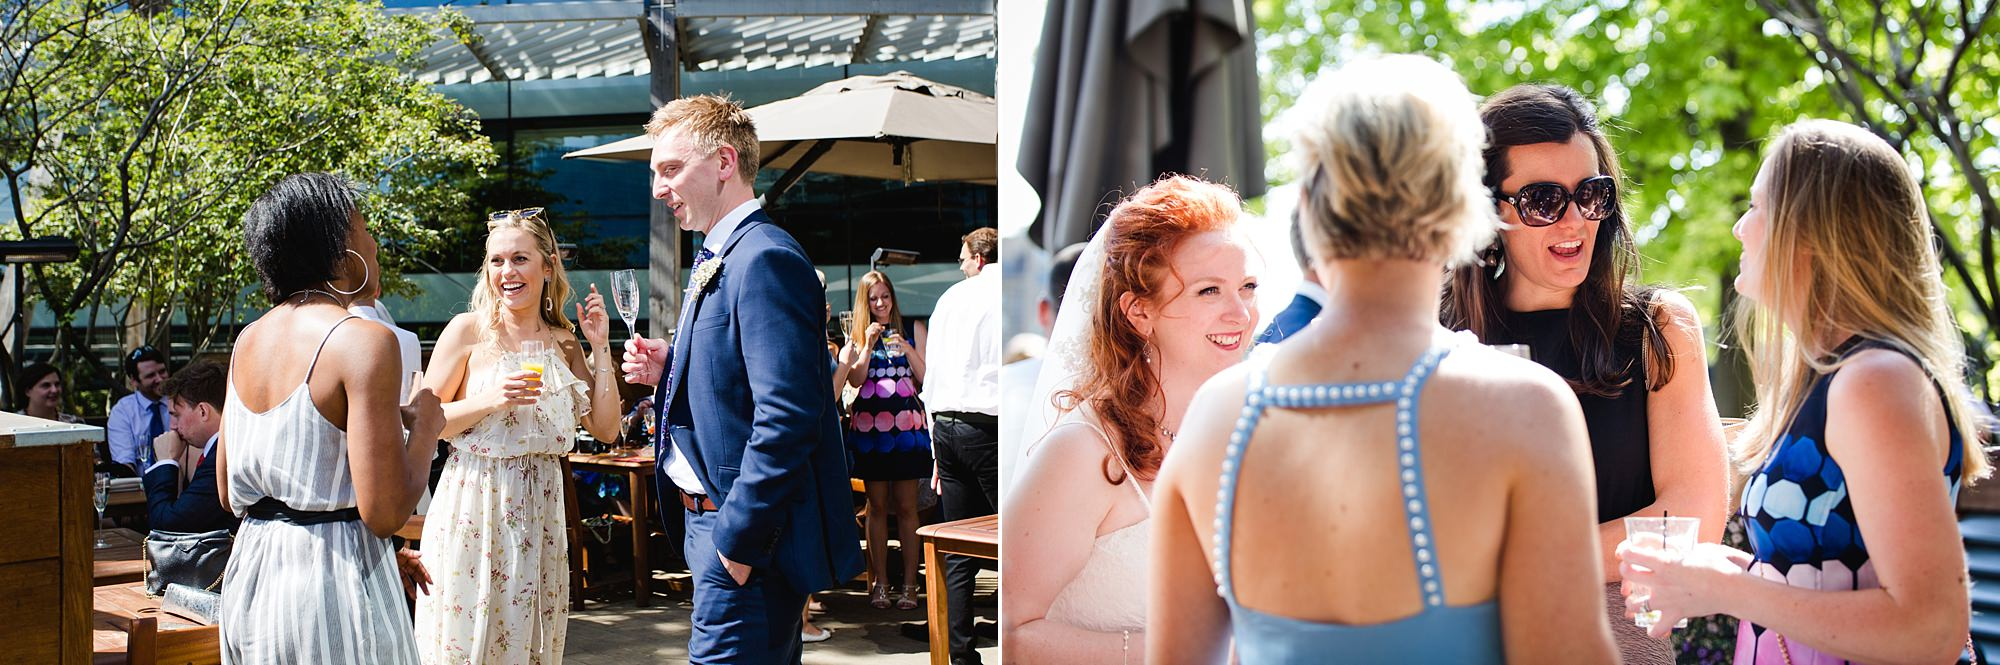 oyster shed wedding guests enjoying drinks reception